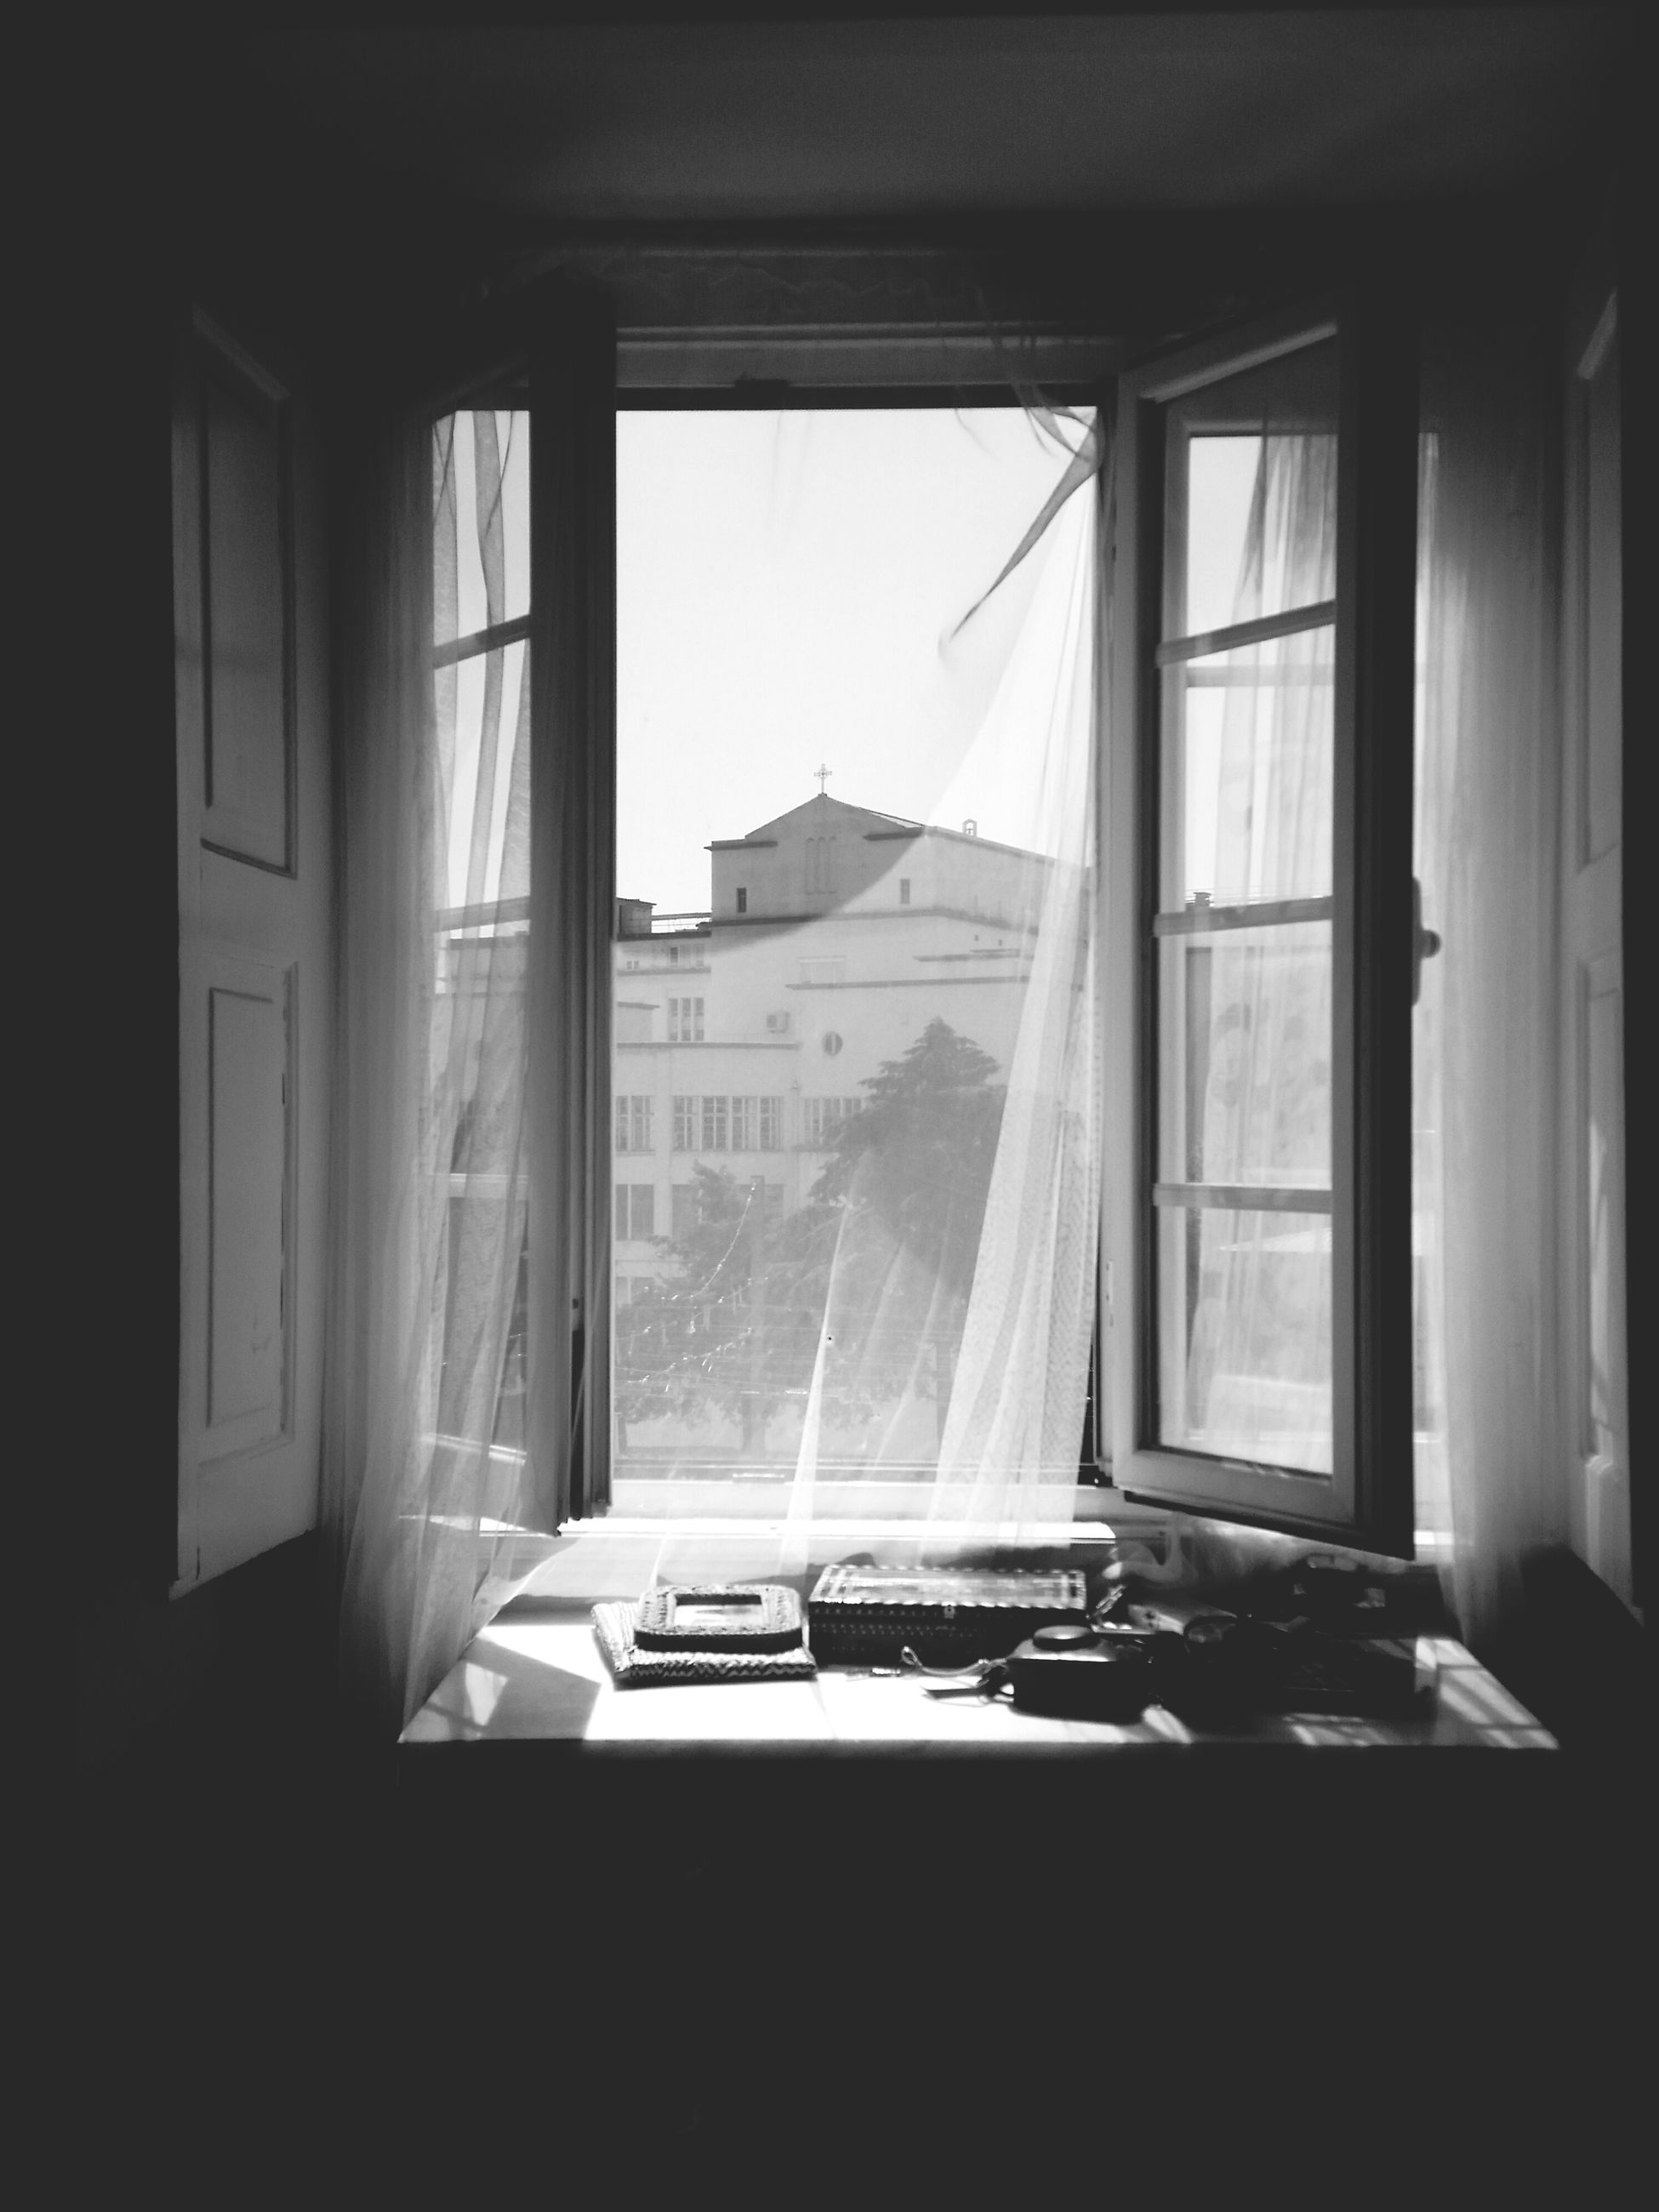 window, indoors, day, no people, transparent, glass - material, curtain, table, home interior, architecture, mountain, house, absence, building, sunlight, built structure, window frame, domestic room, open